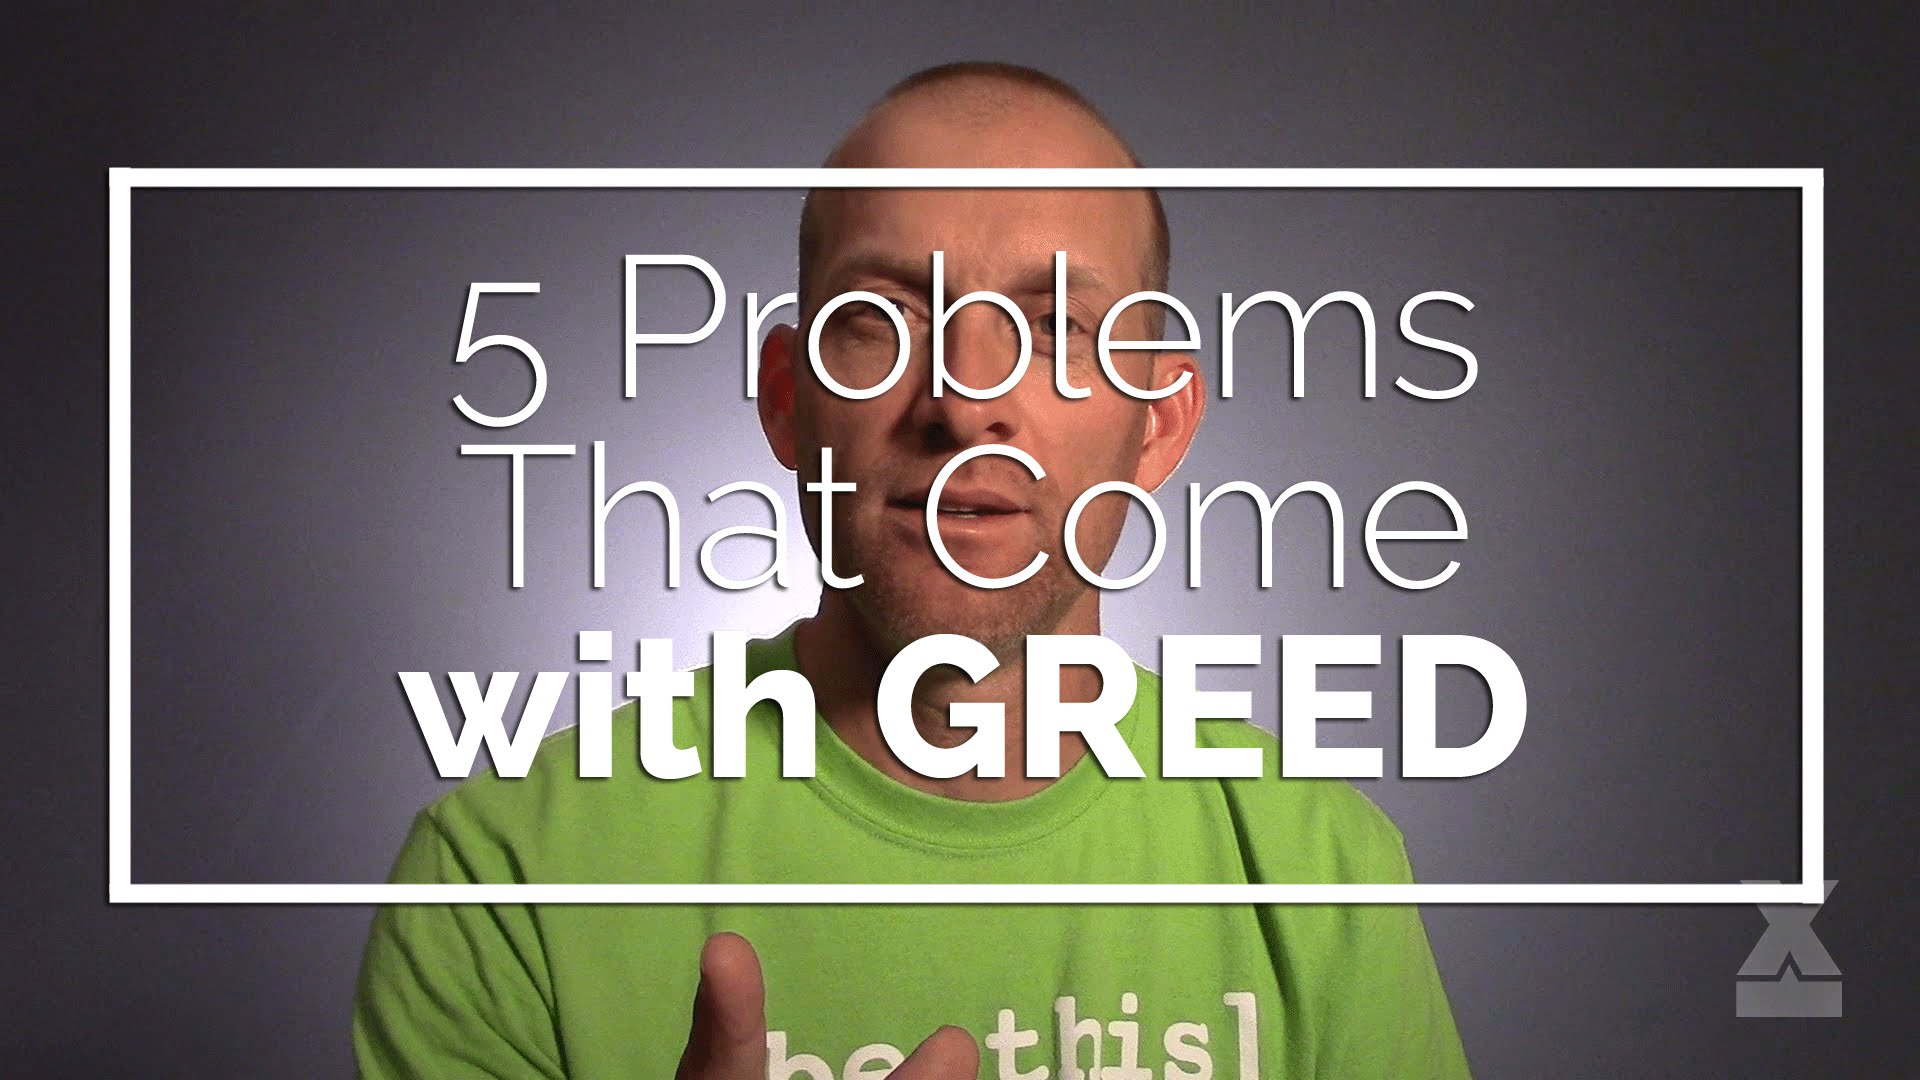 5 Problems with Greed